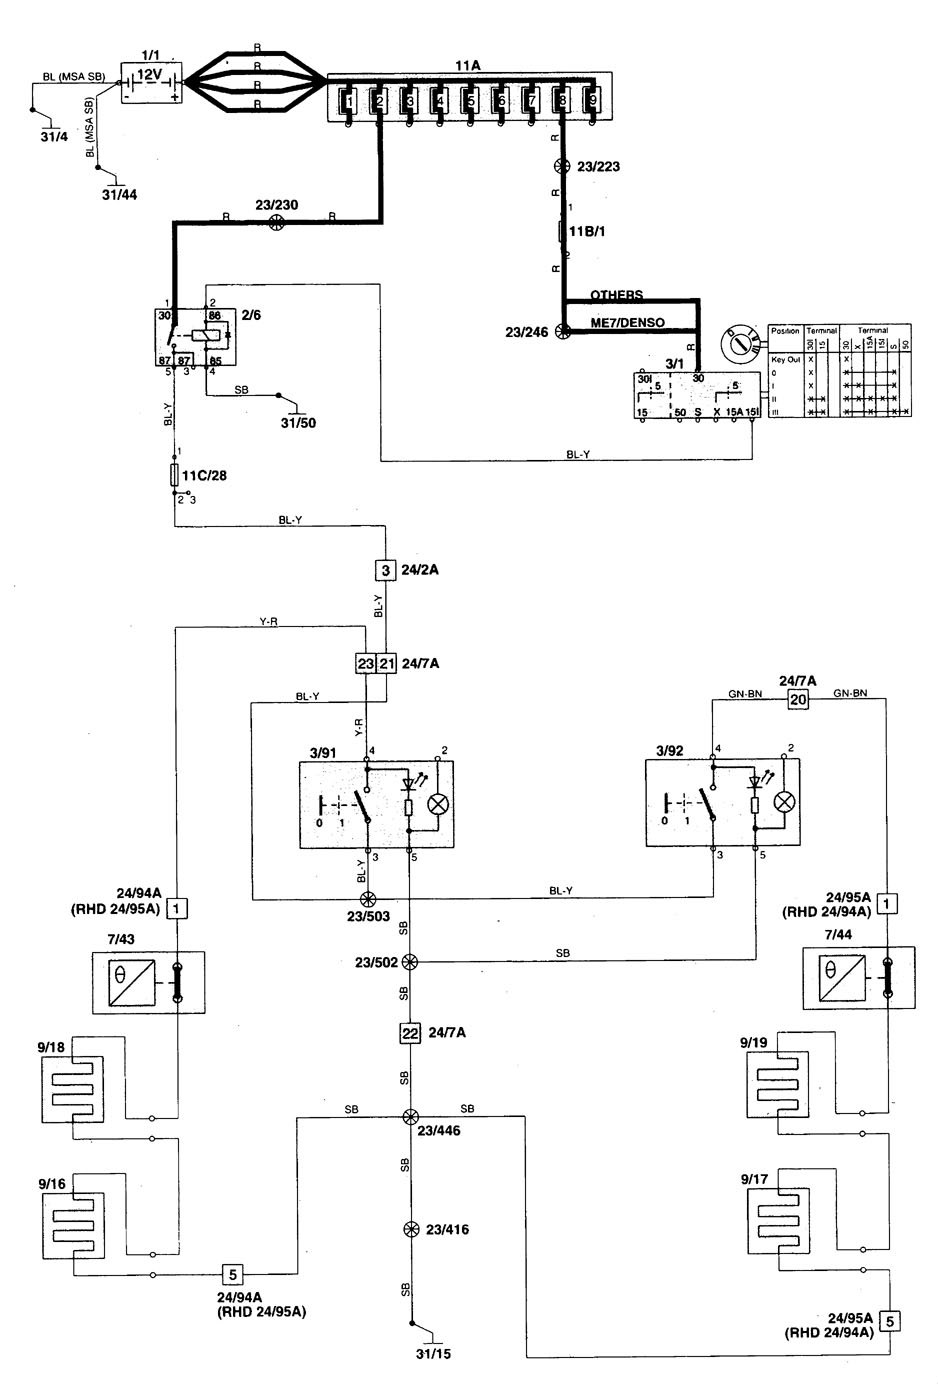 Tempstar Heat Pump Wiring Schematic on westinghouse heat pump schematic, nordyne heat pump schematic, kenmore heat pump schematic, payne heat pump schematic, miller heat pump schematic, coleman heat pump schematic, basic heat pump schematic, carrier heat pump schematic, lennox heat pump schematic, york heat pump schematic, american standard heat pump schematic, goettl heat pump schematic, goodman heat pump schematic, heat pump thermostat wiring schematic, trane heat pump schematic, mcquay heat pump schematic,